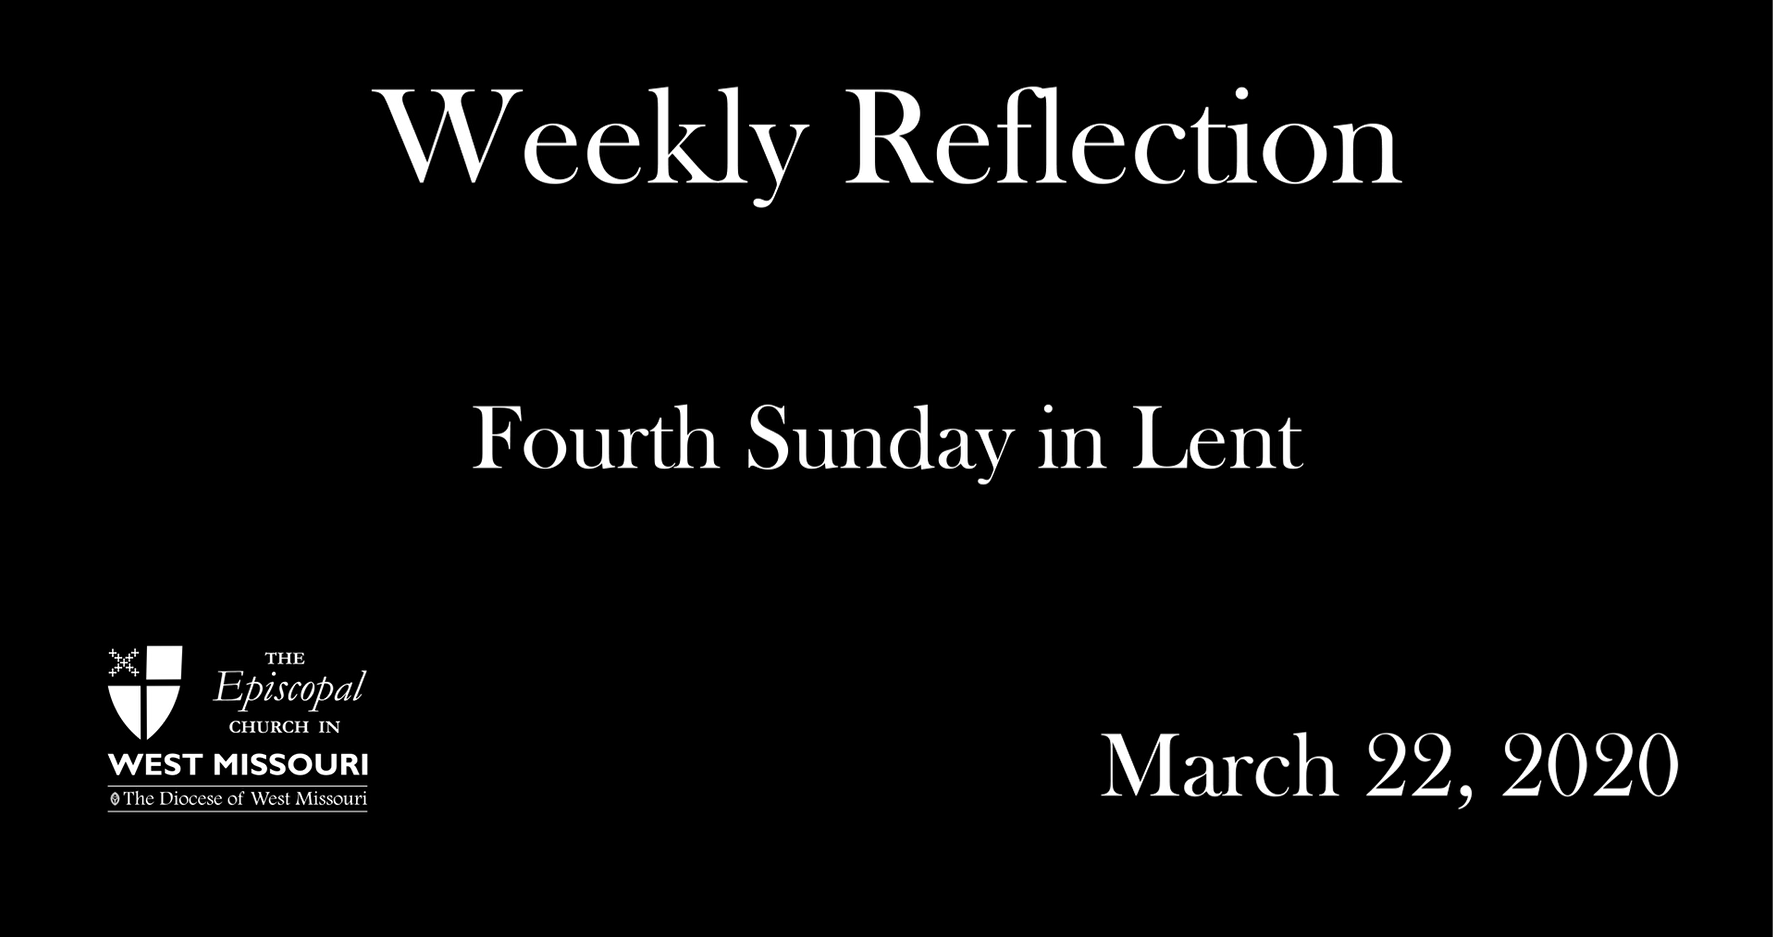 Weekly Reflection – Fourth Sunday in Lent